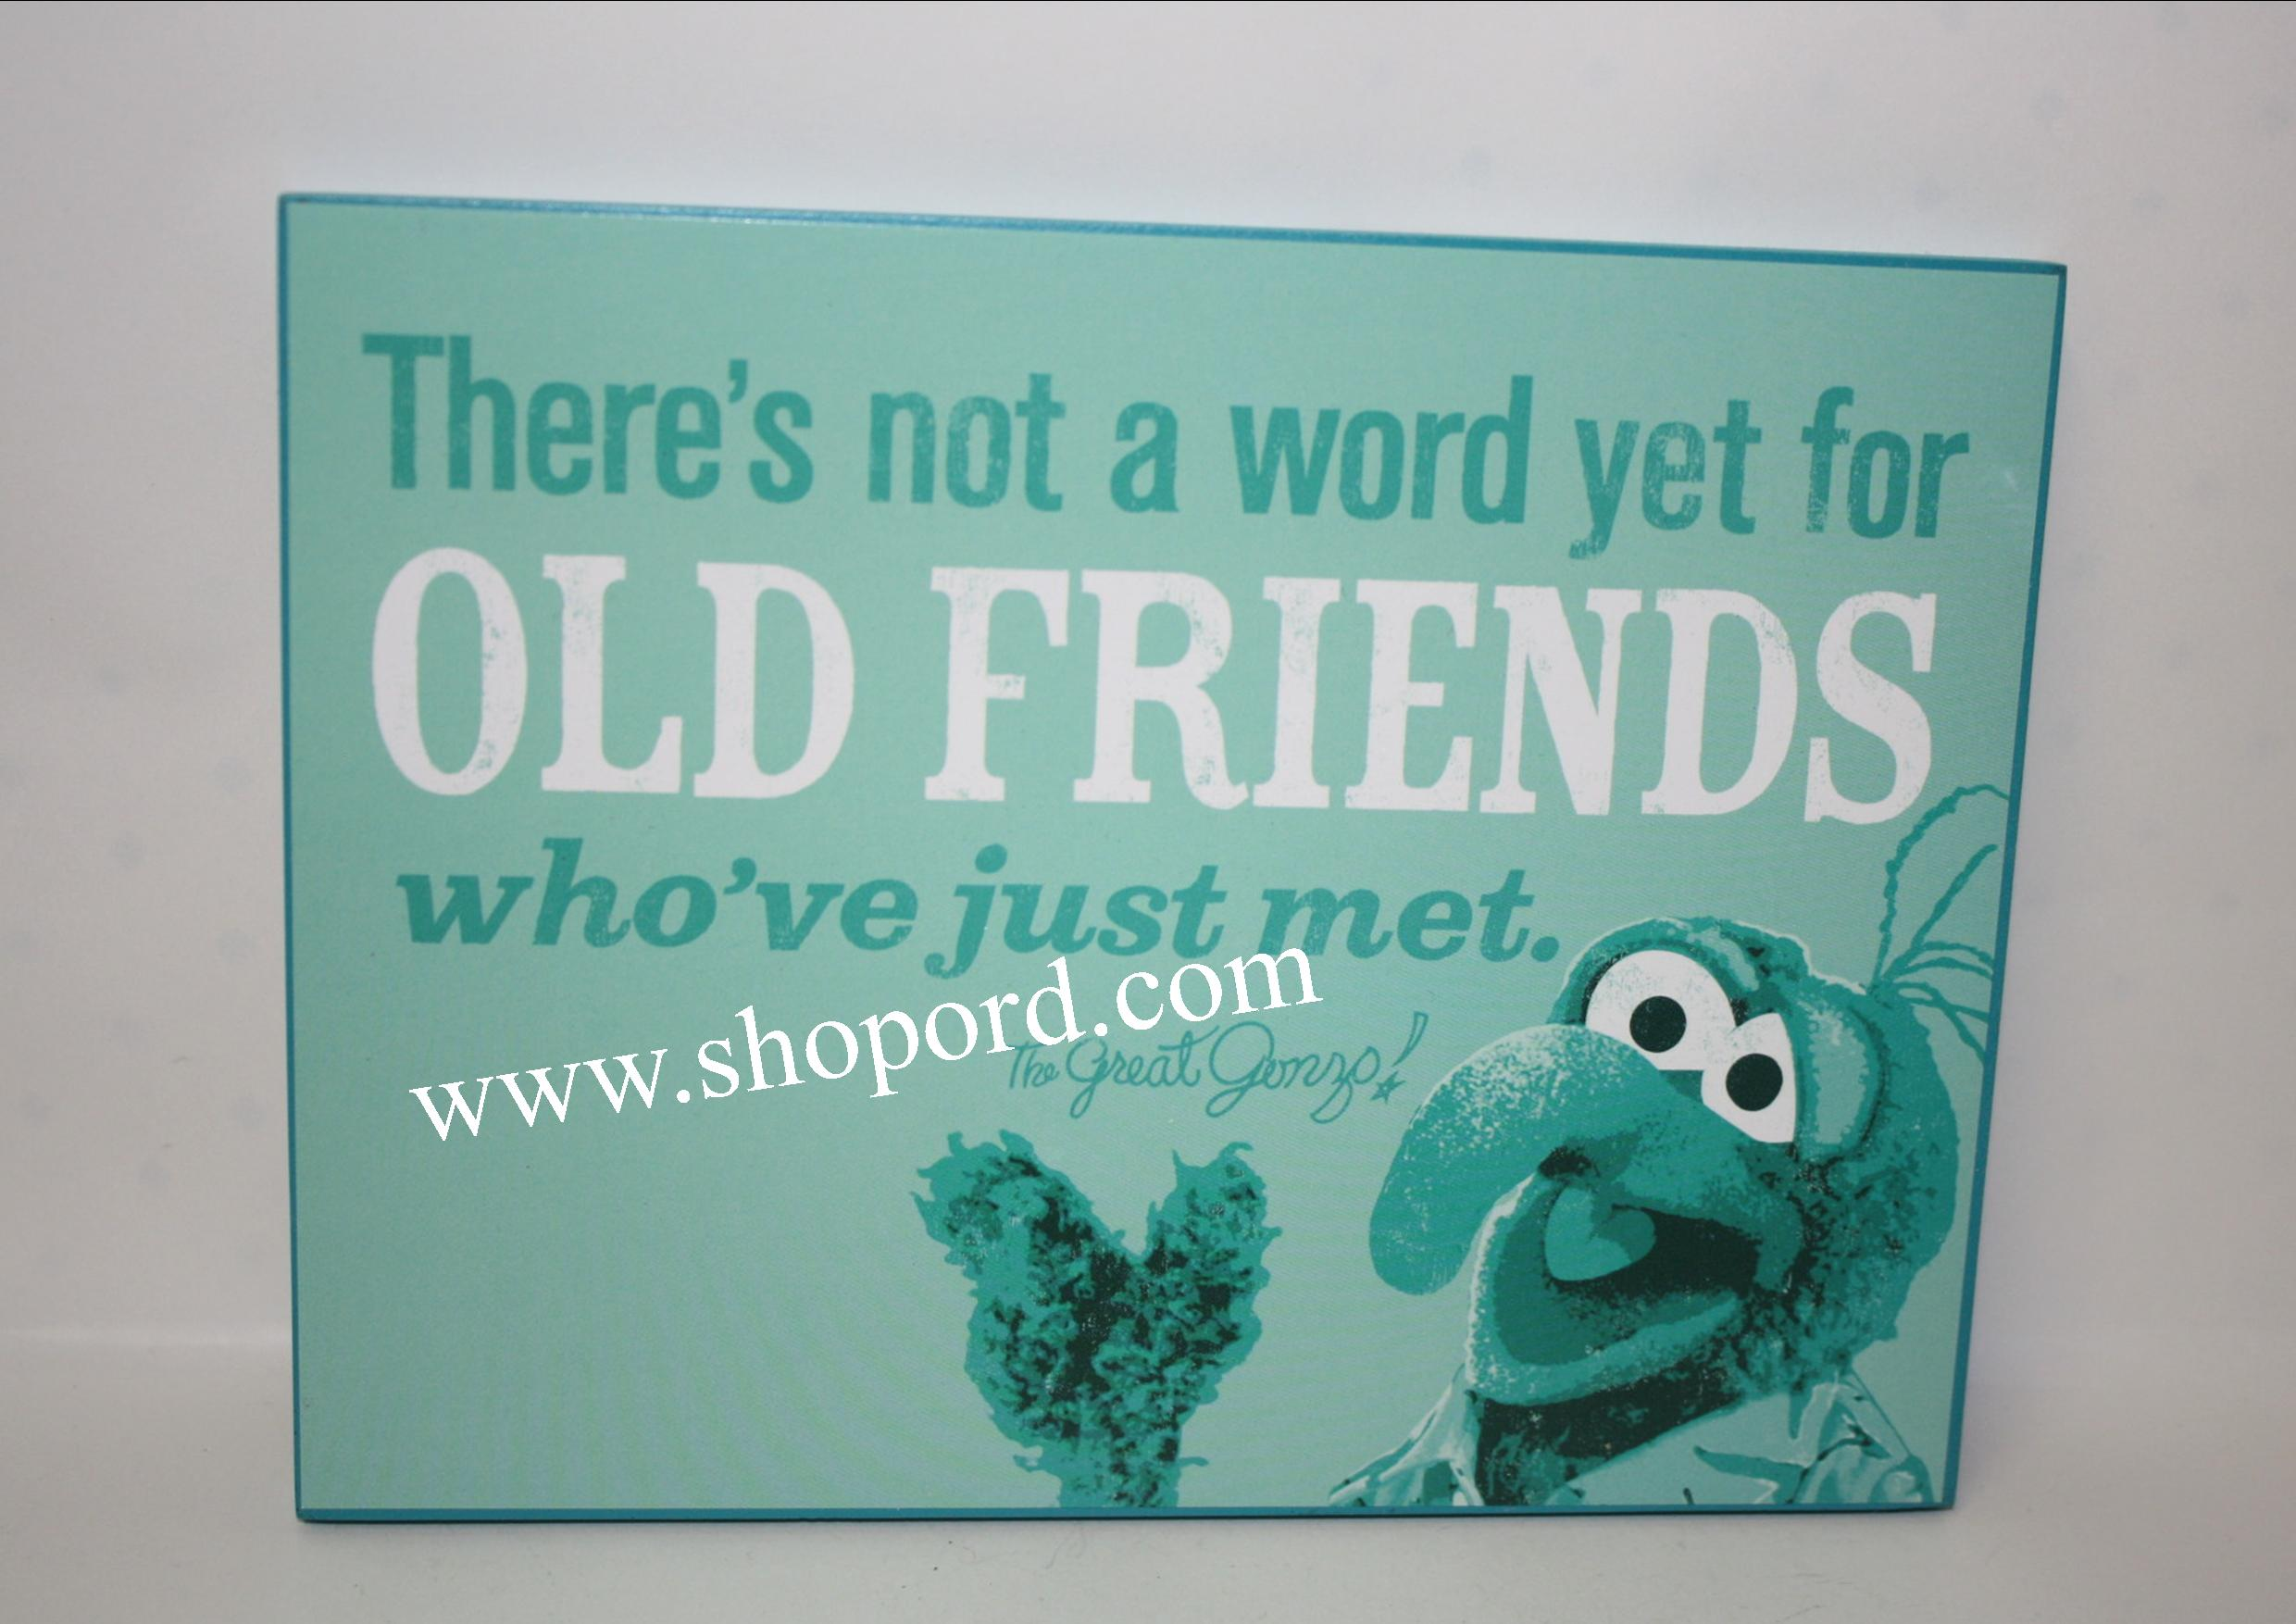 Hallmark The Muppets The Great Gonzo There's Not A Word Yet For Old Friends Wall Art MUP5018